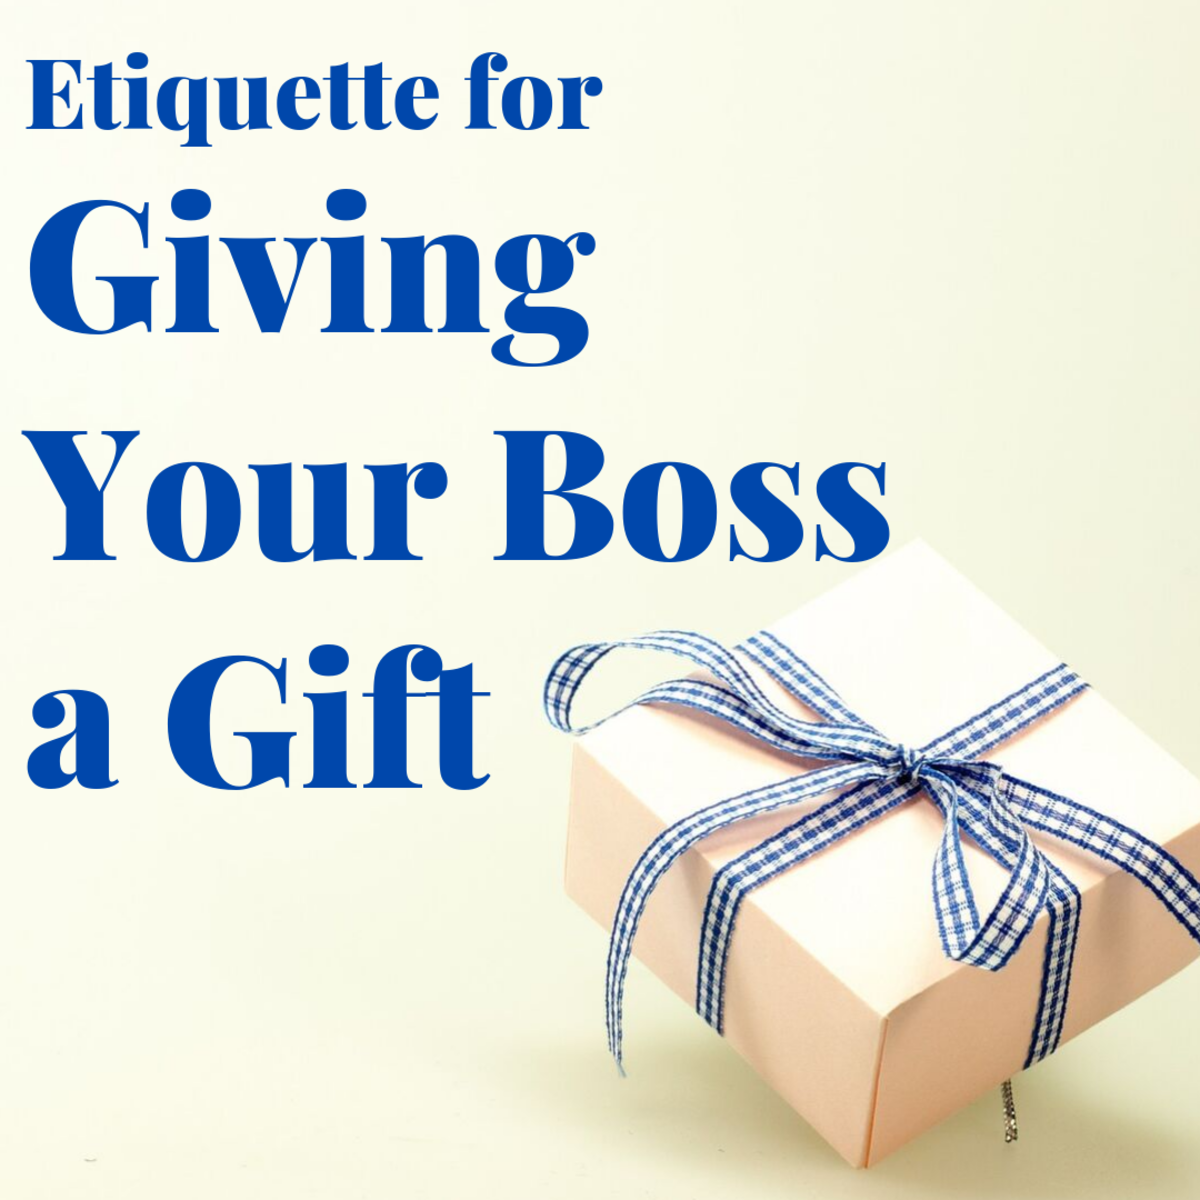 Etiquette for Giving Your Boss a Gift at Work